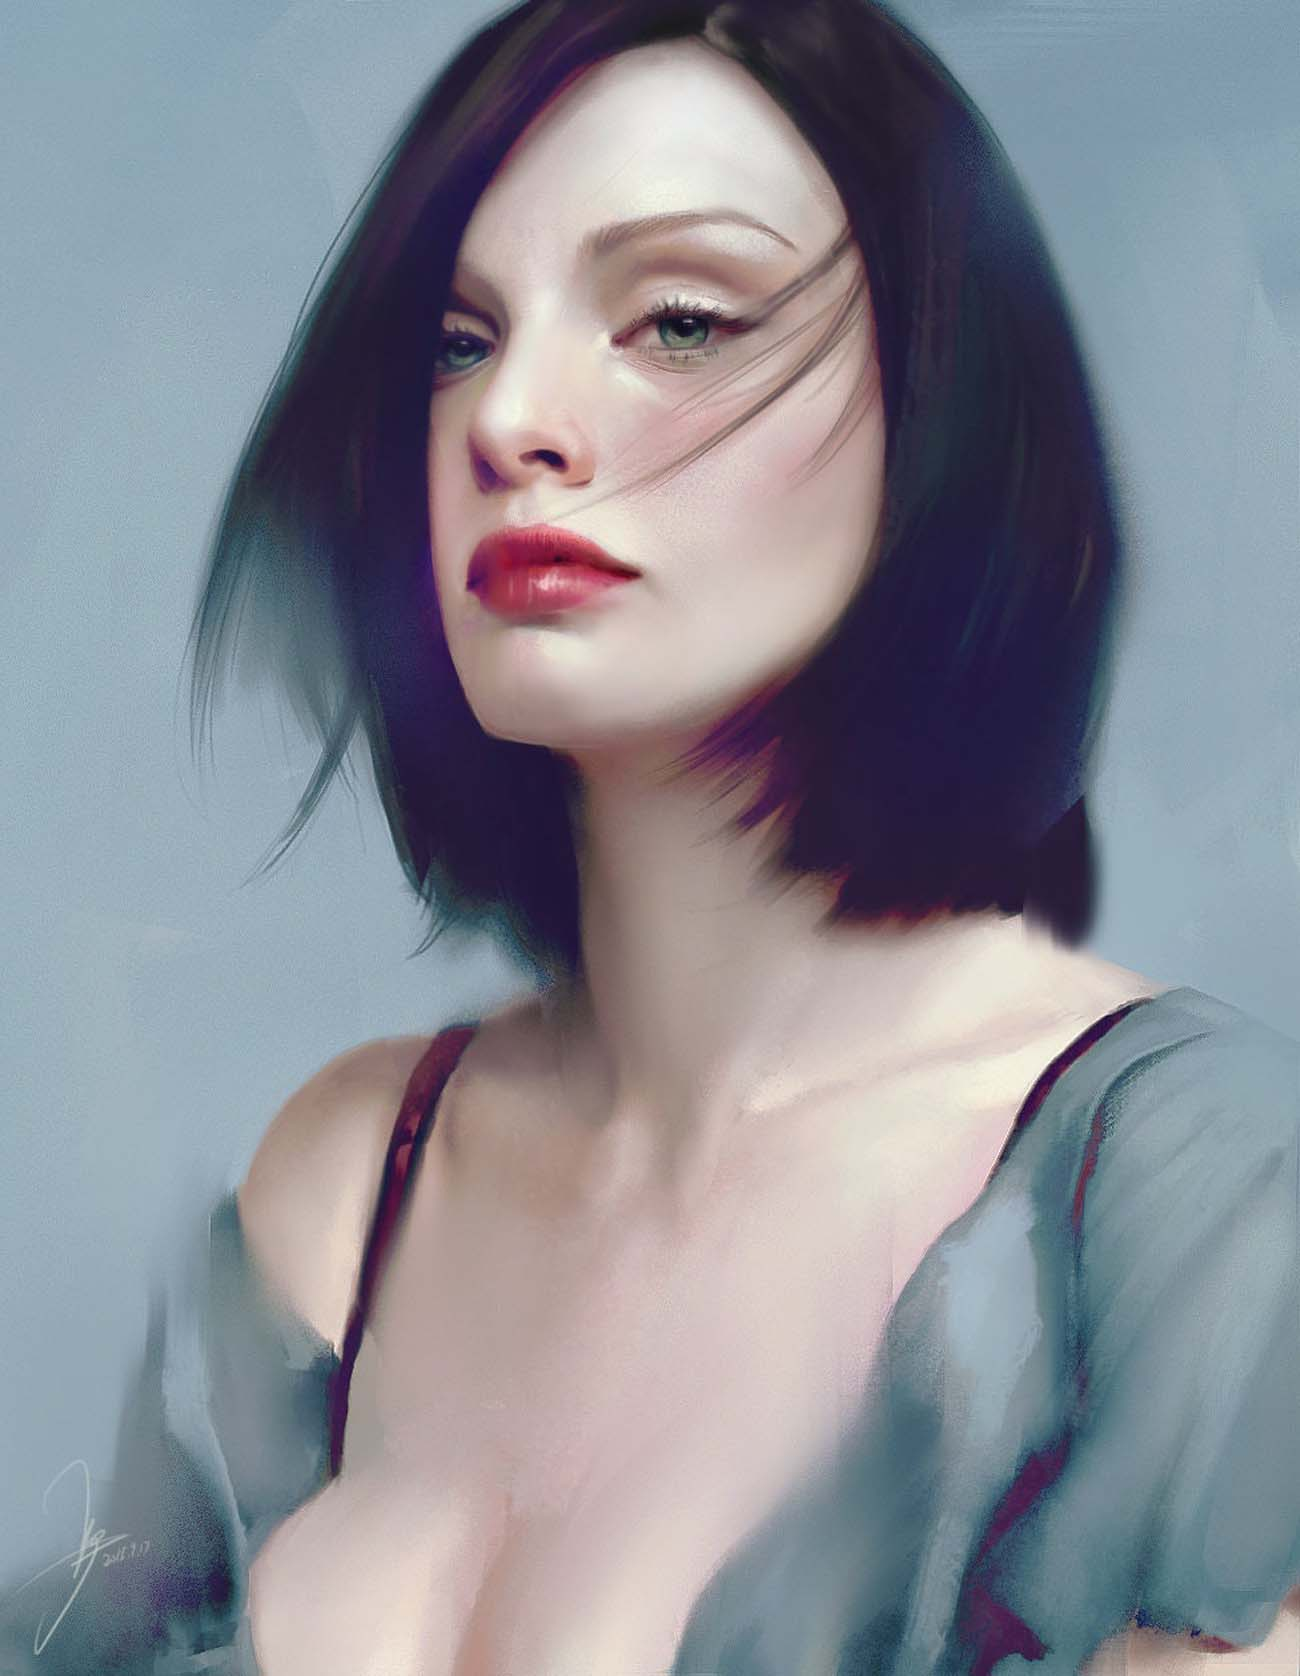 JUN YOU | Paintable.cc Digital Painting Inspiration - Learn the Art of Digital Painting! #digitalpainting #digitalart